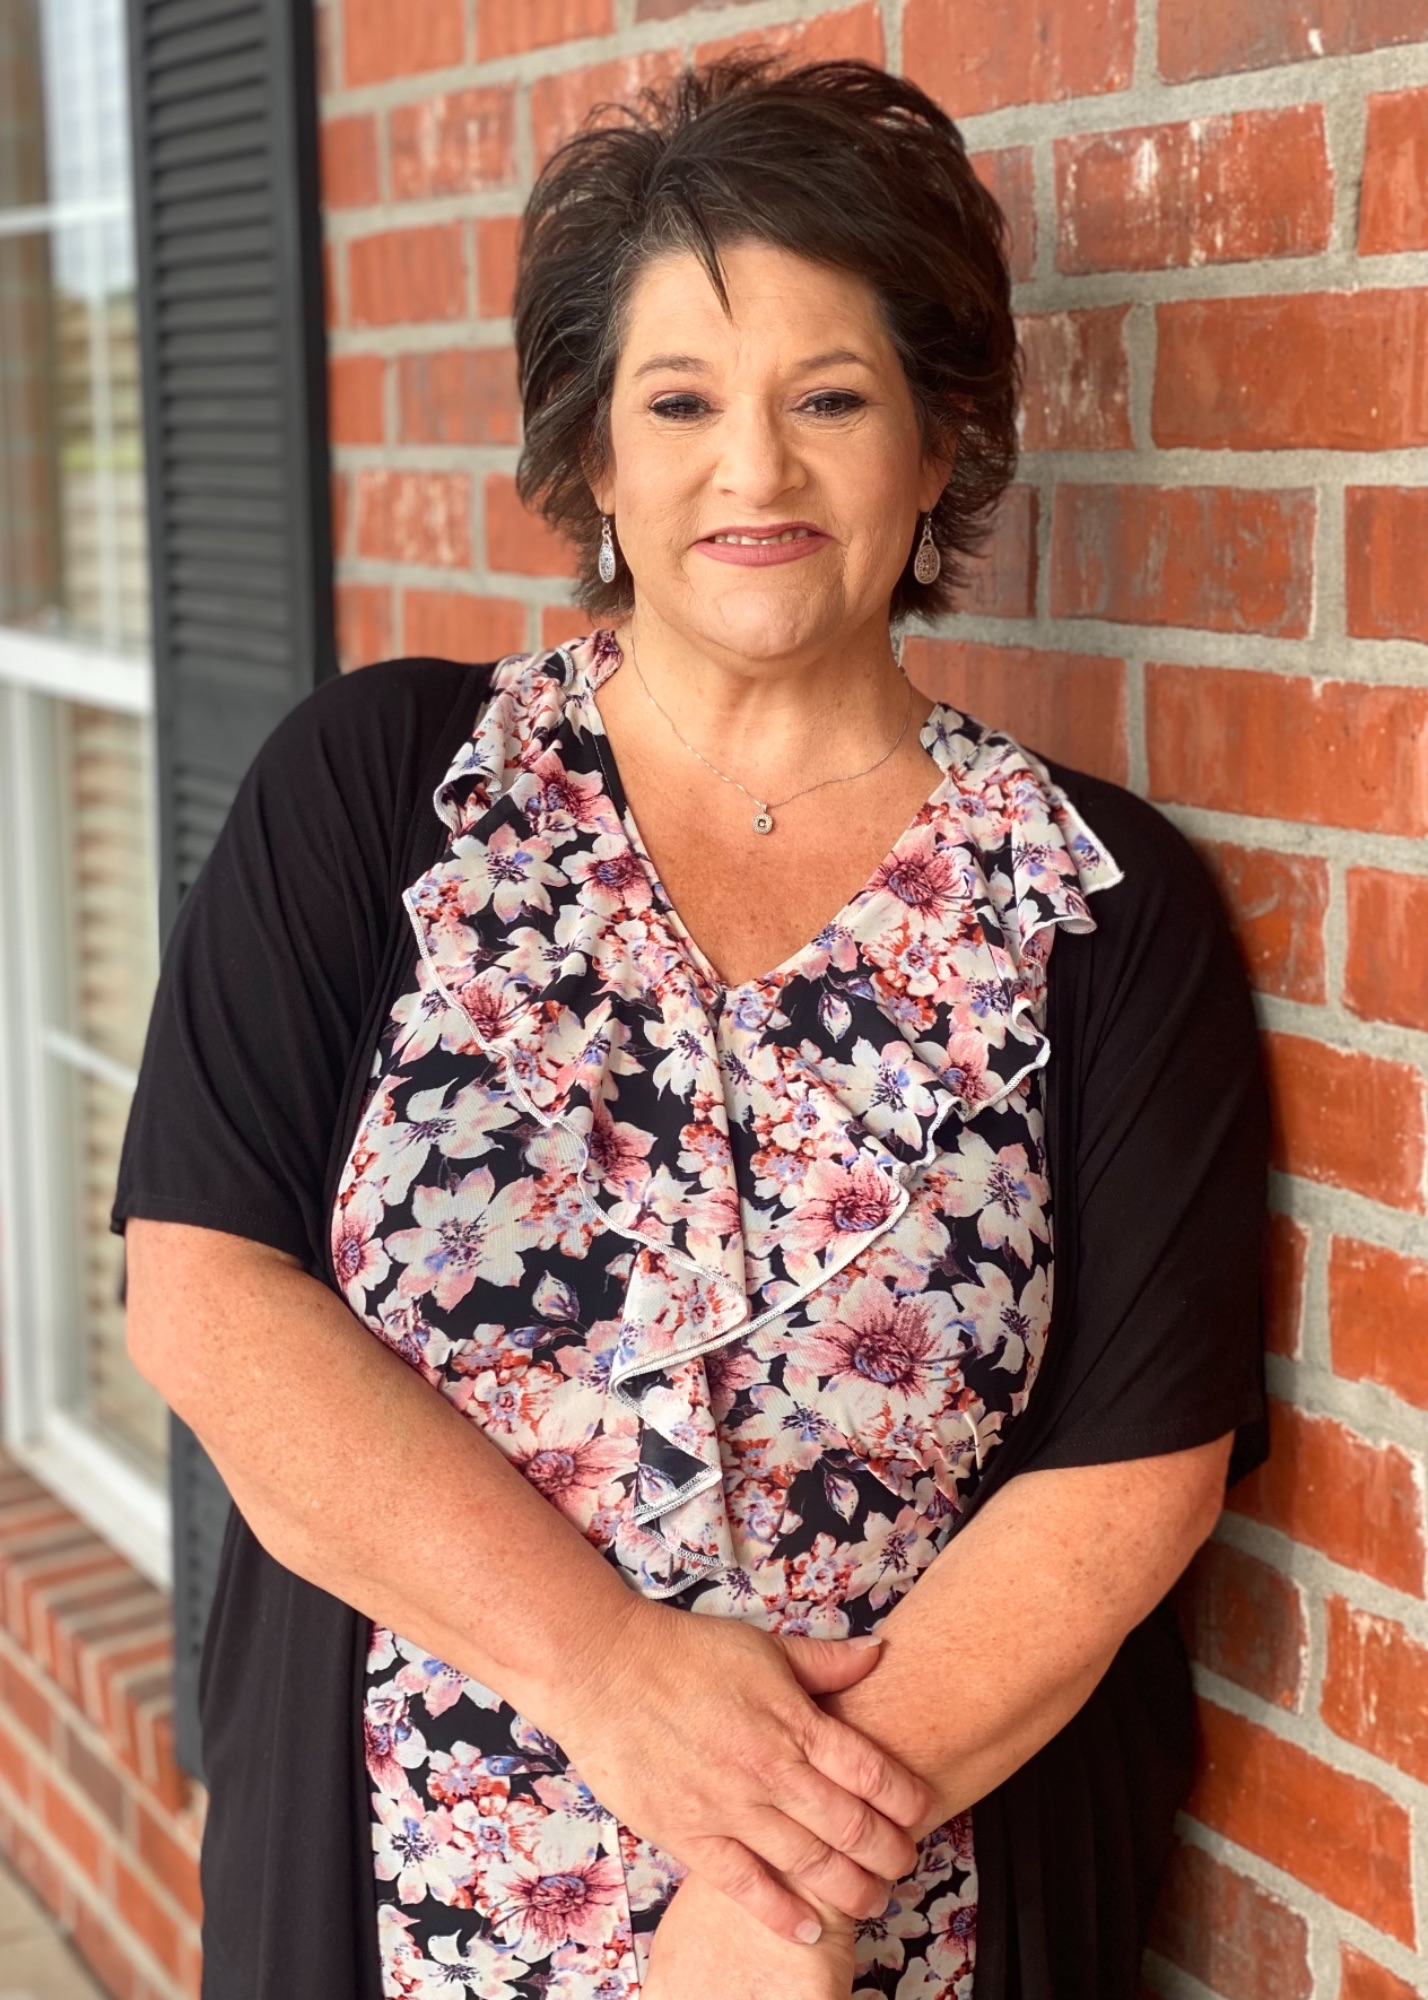 Photo of Donette C.Mitchell  - Funeral Home Attendant - New Iberia